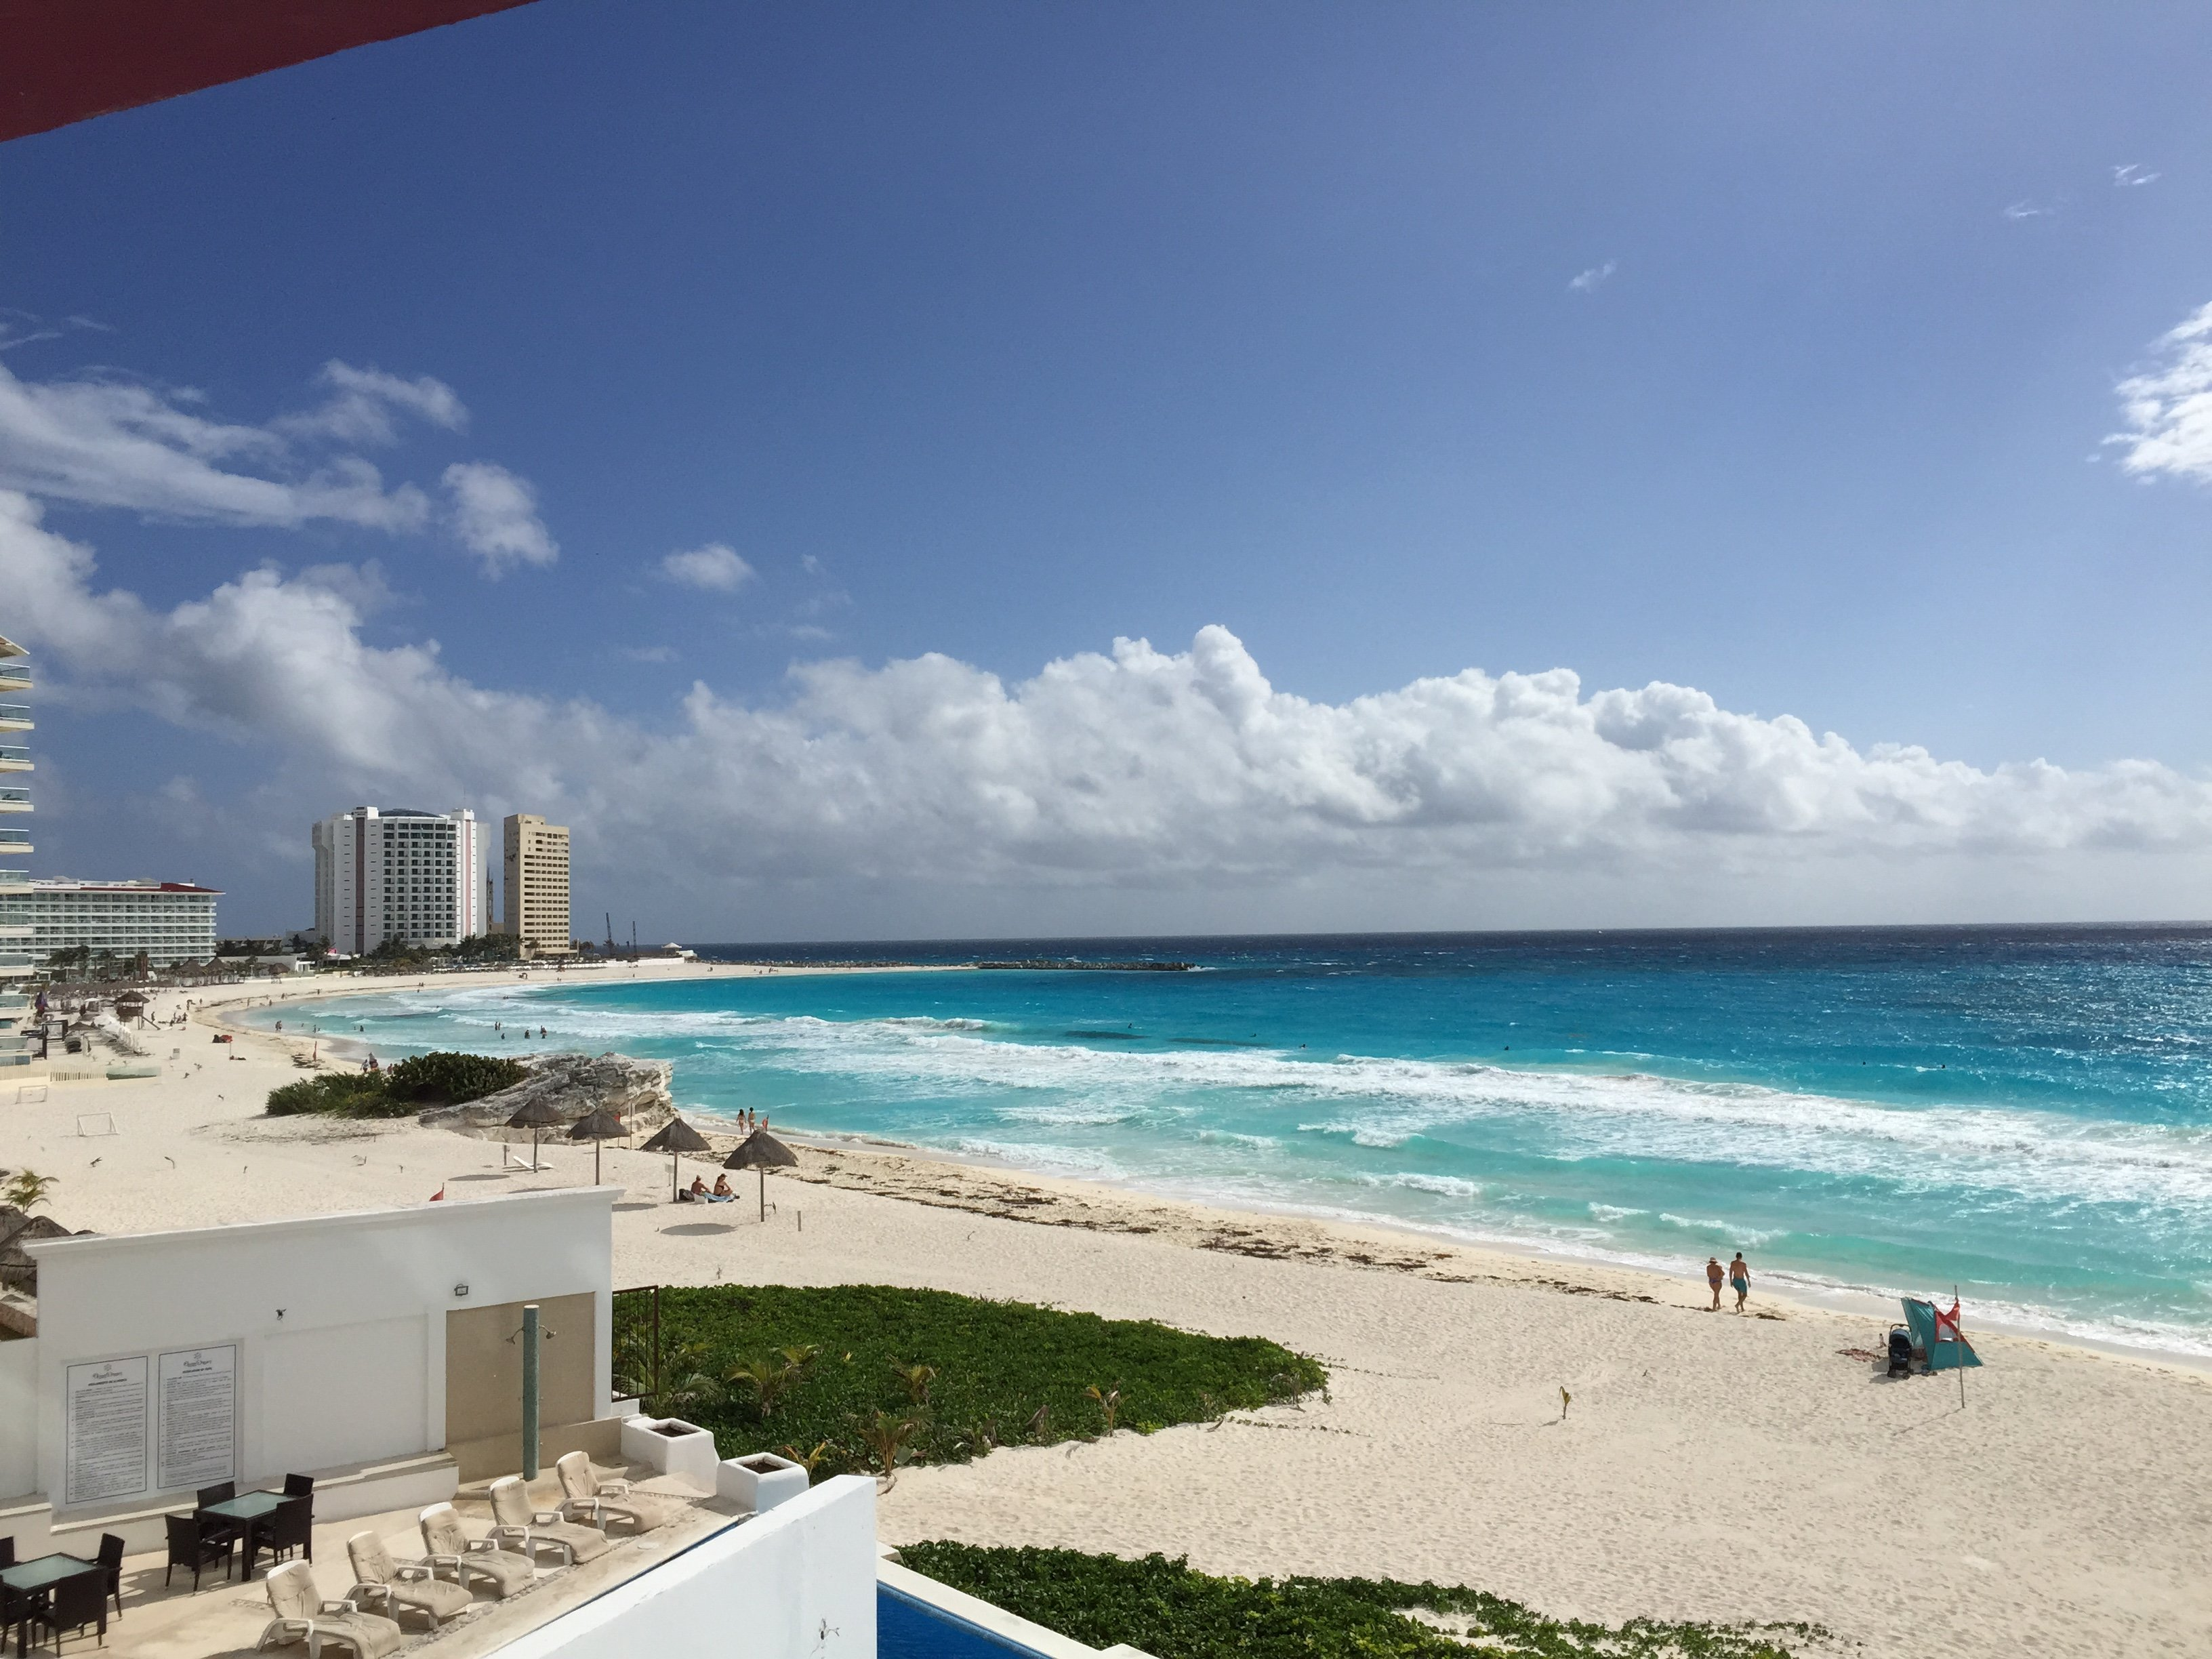 Cancun Beach Ocean View 2015